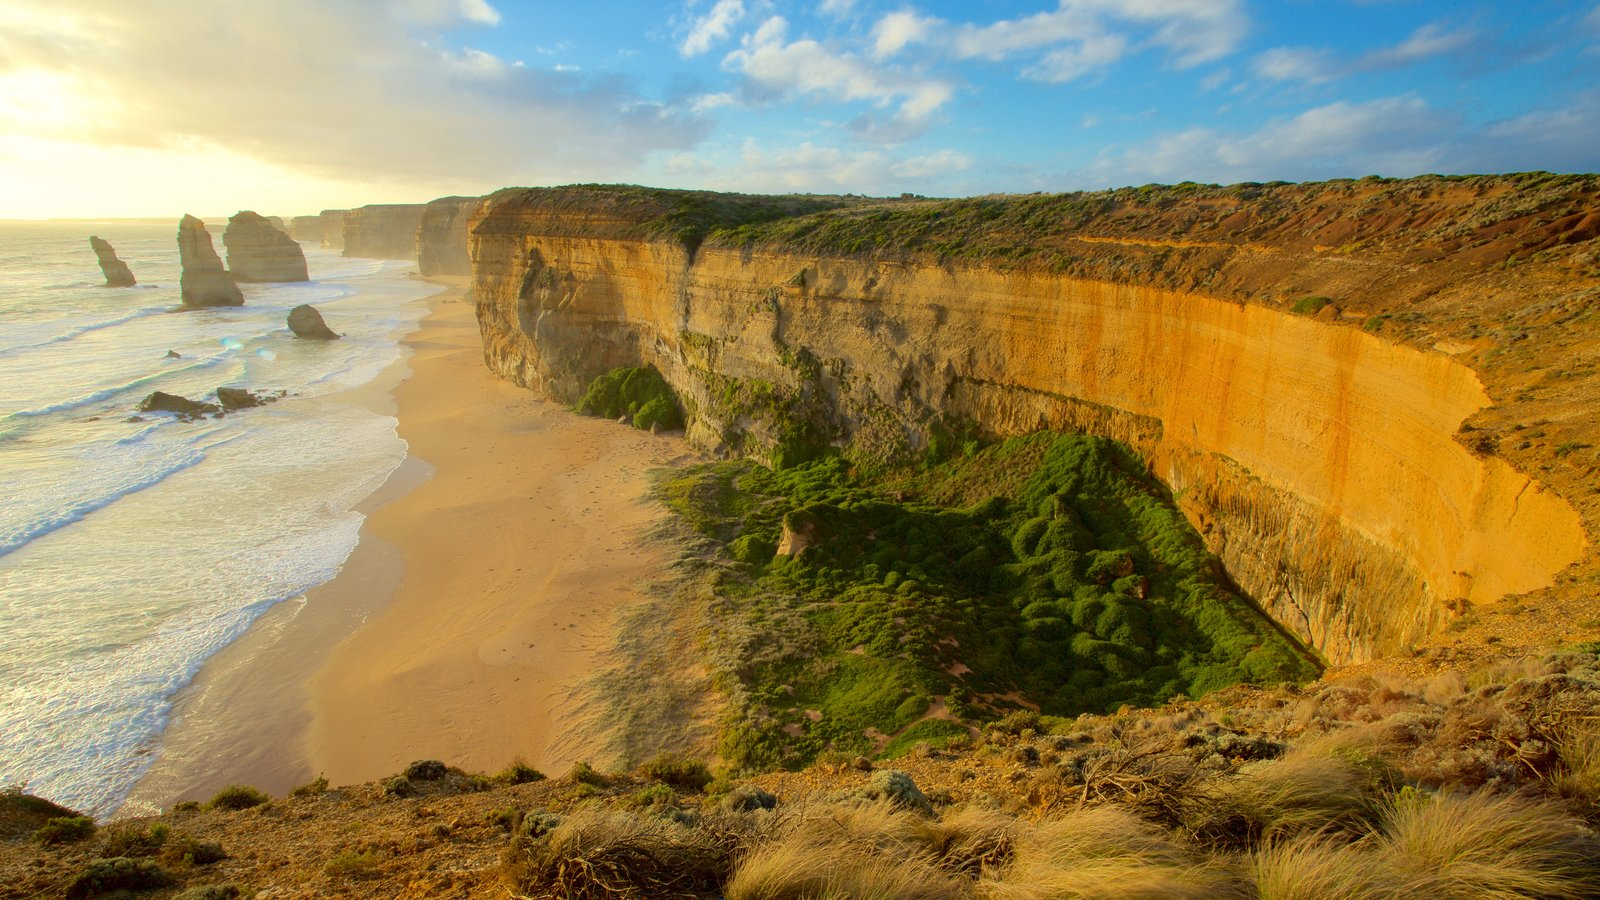 Twelve Apostles featuring a sunset, a beach and a gorge or canyon